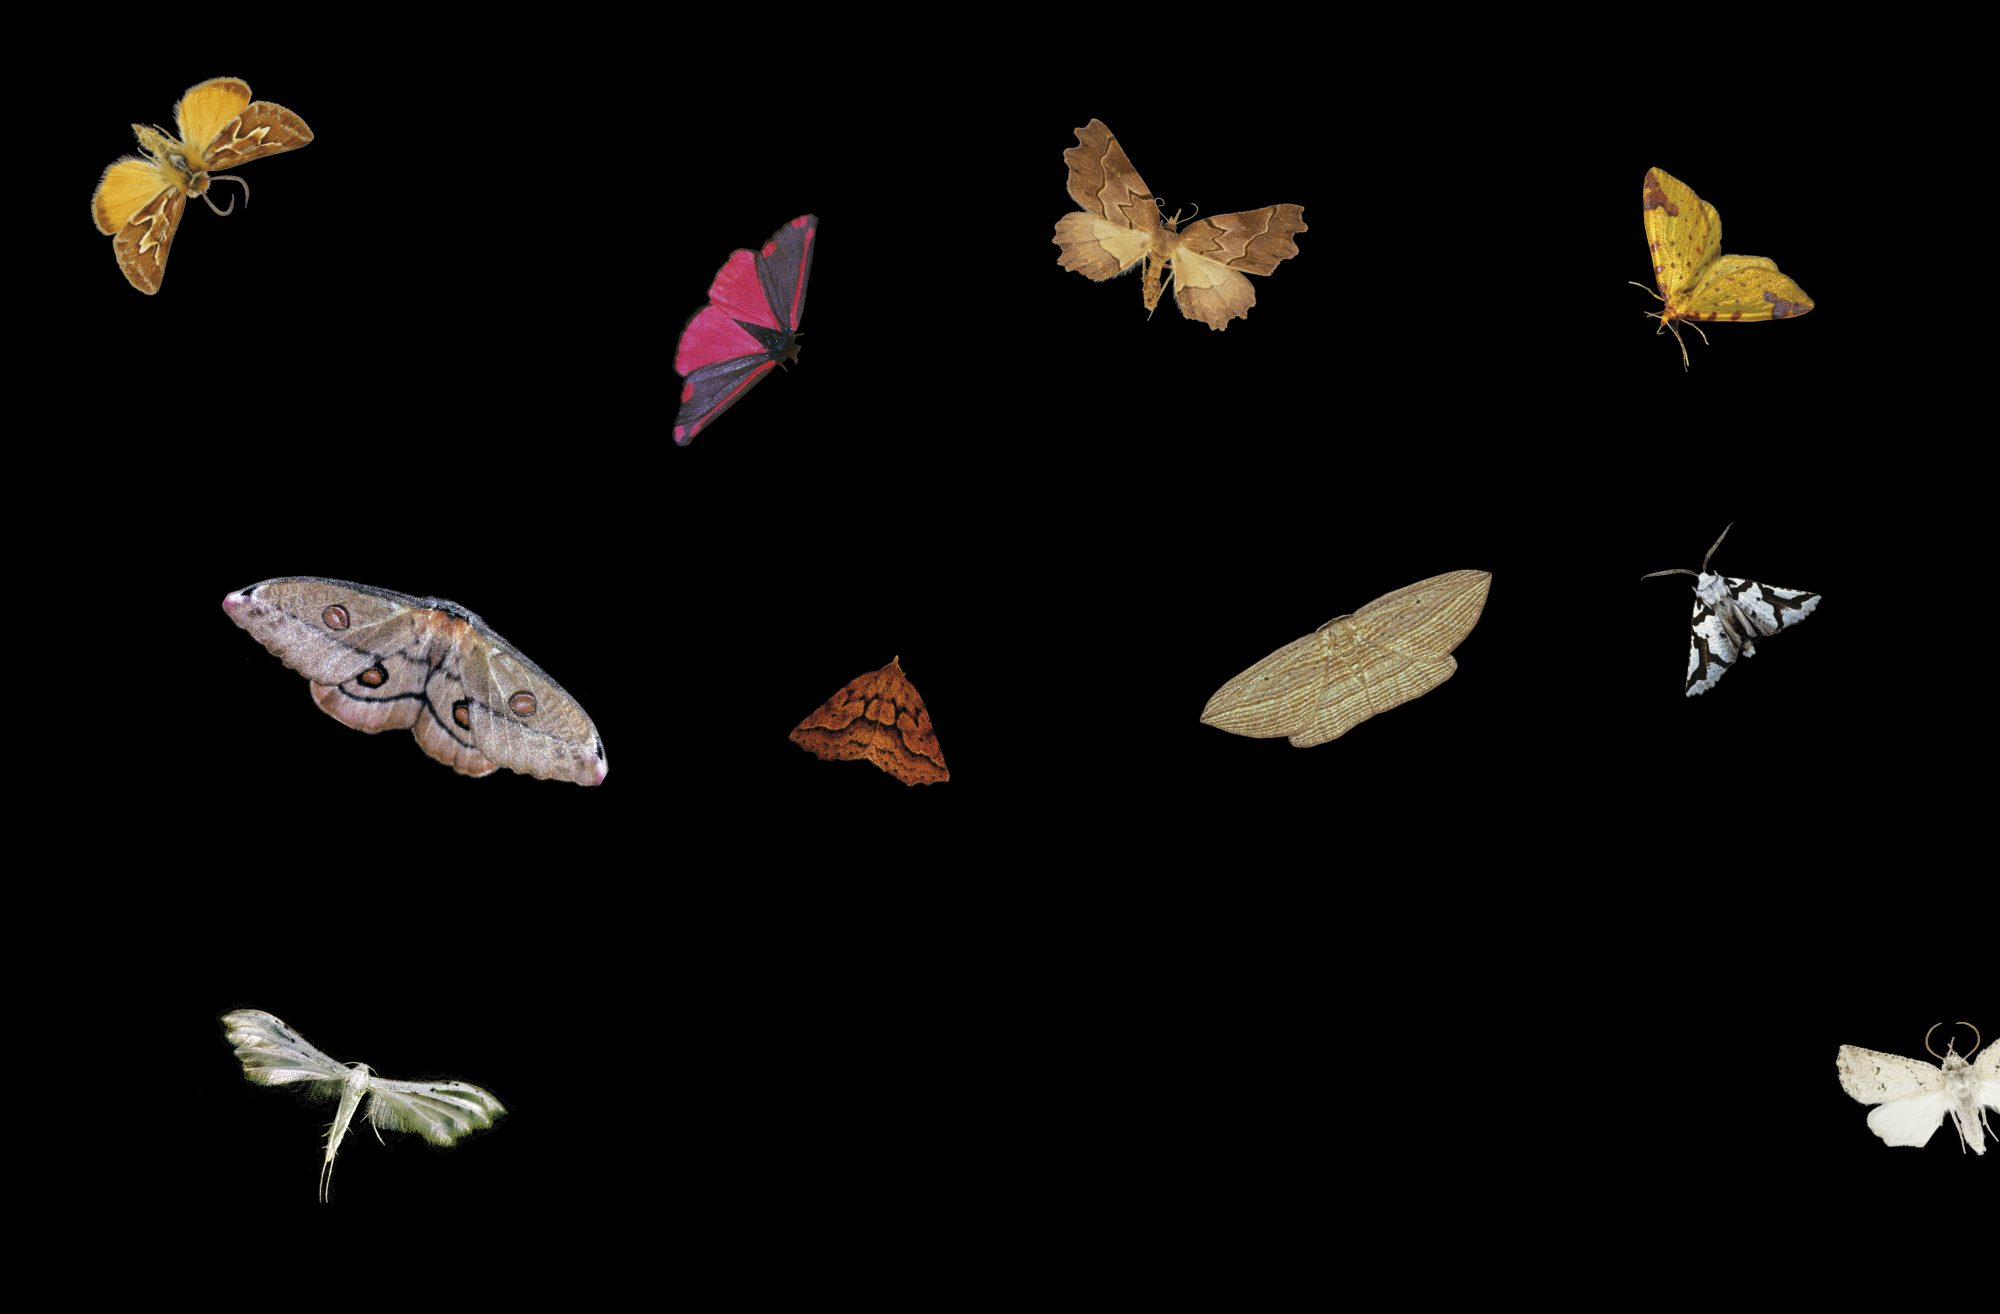 Night moves: The world of moths | New Zealand Geographic